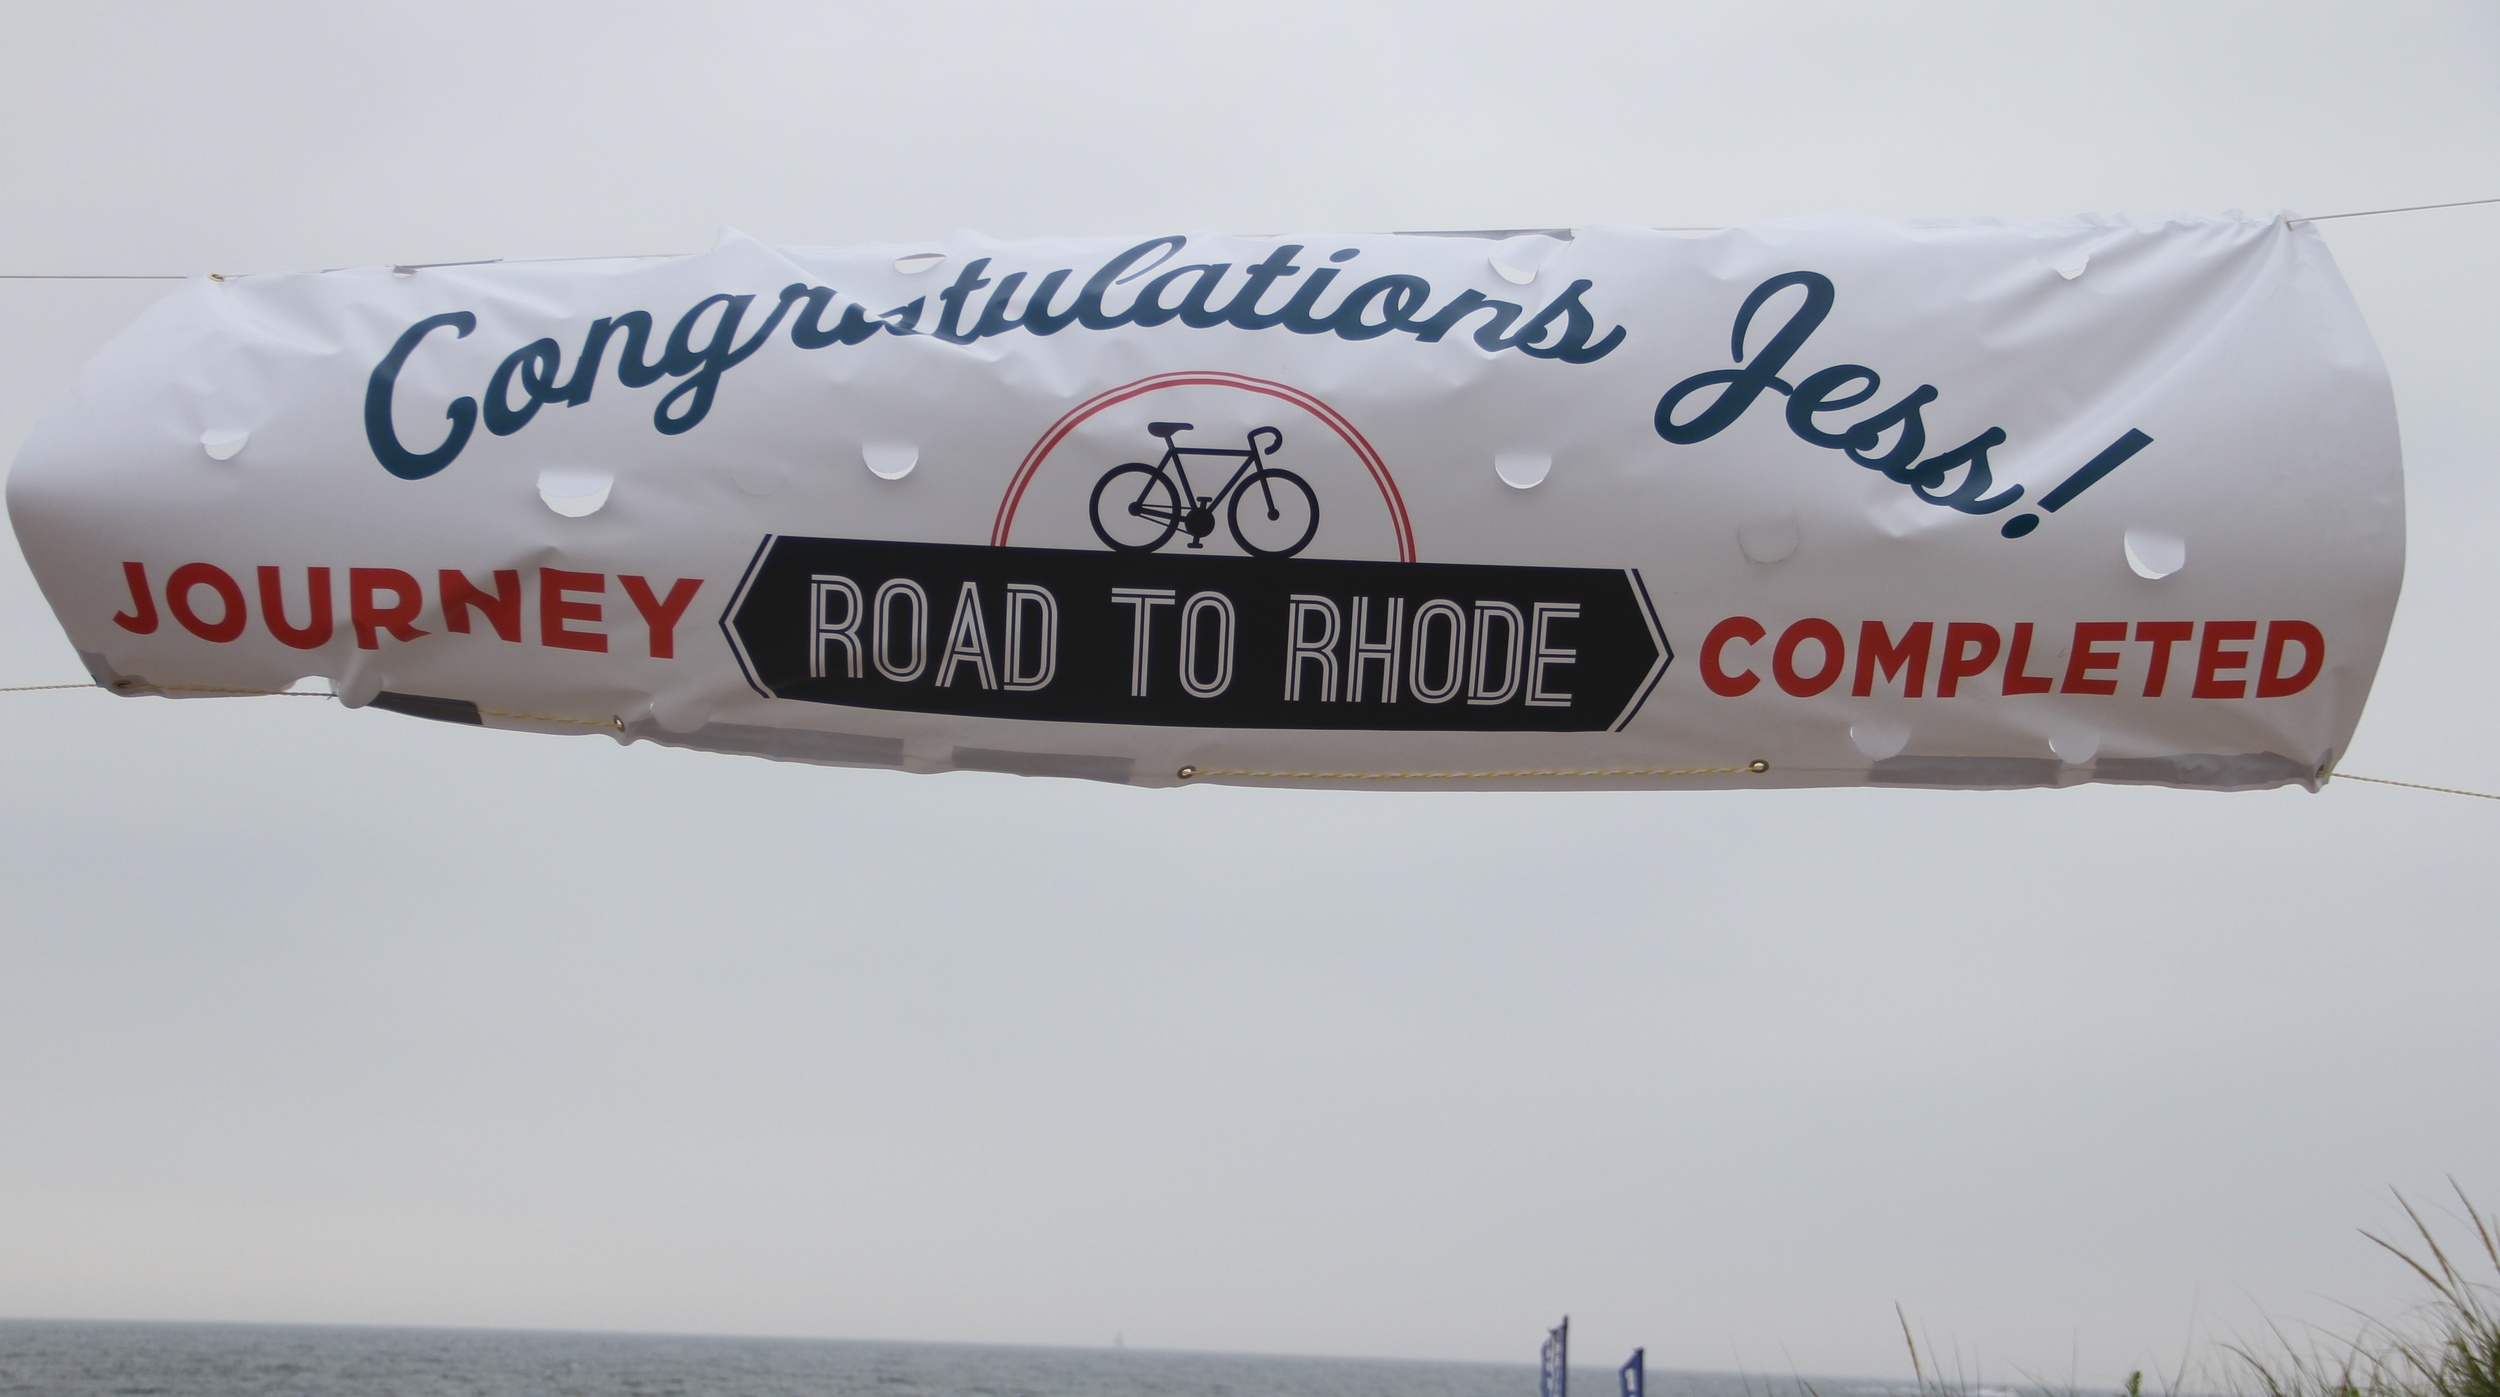 The banner- the first thing I saw when riding up the beach.